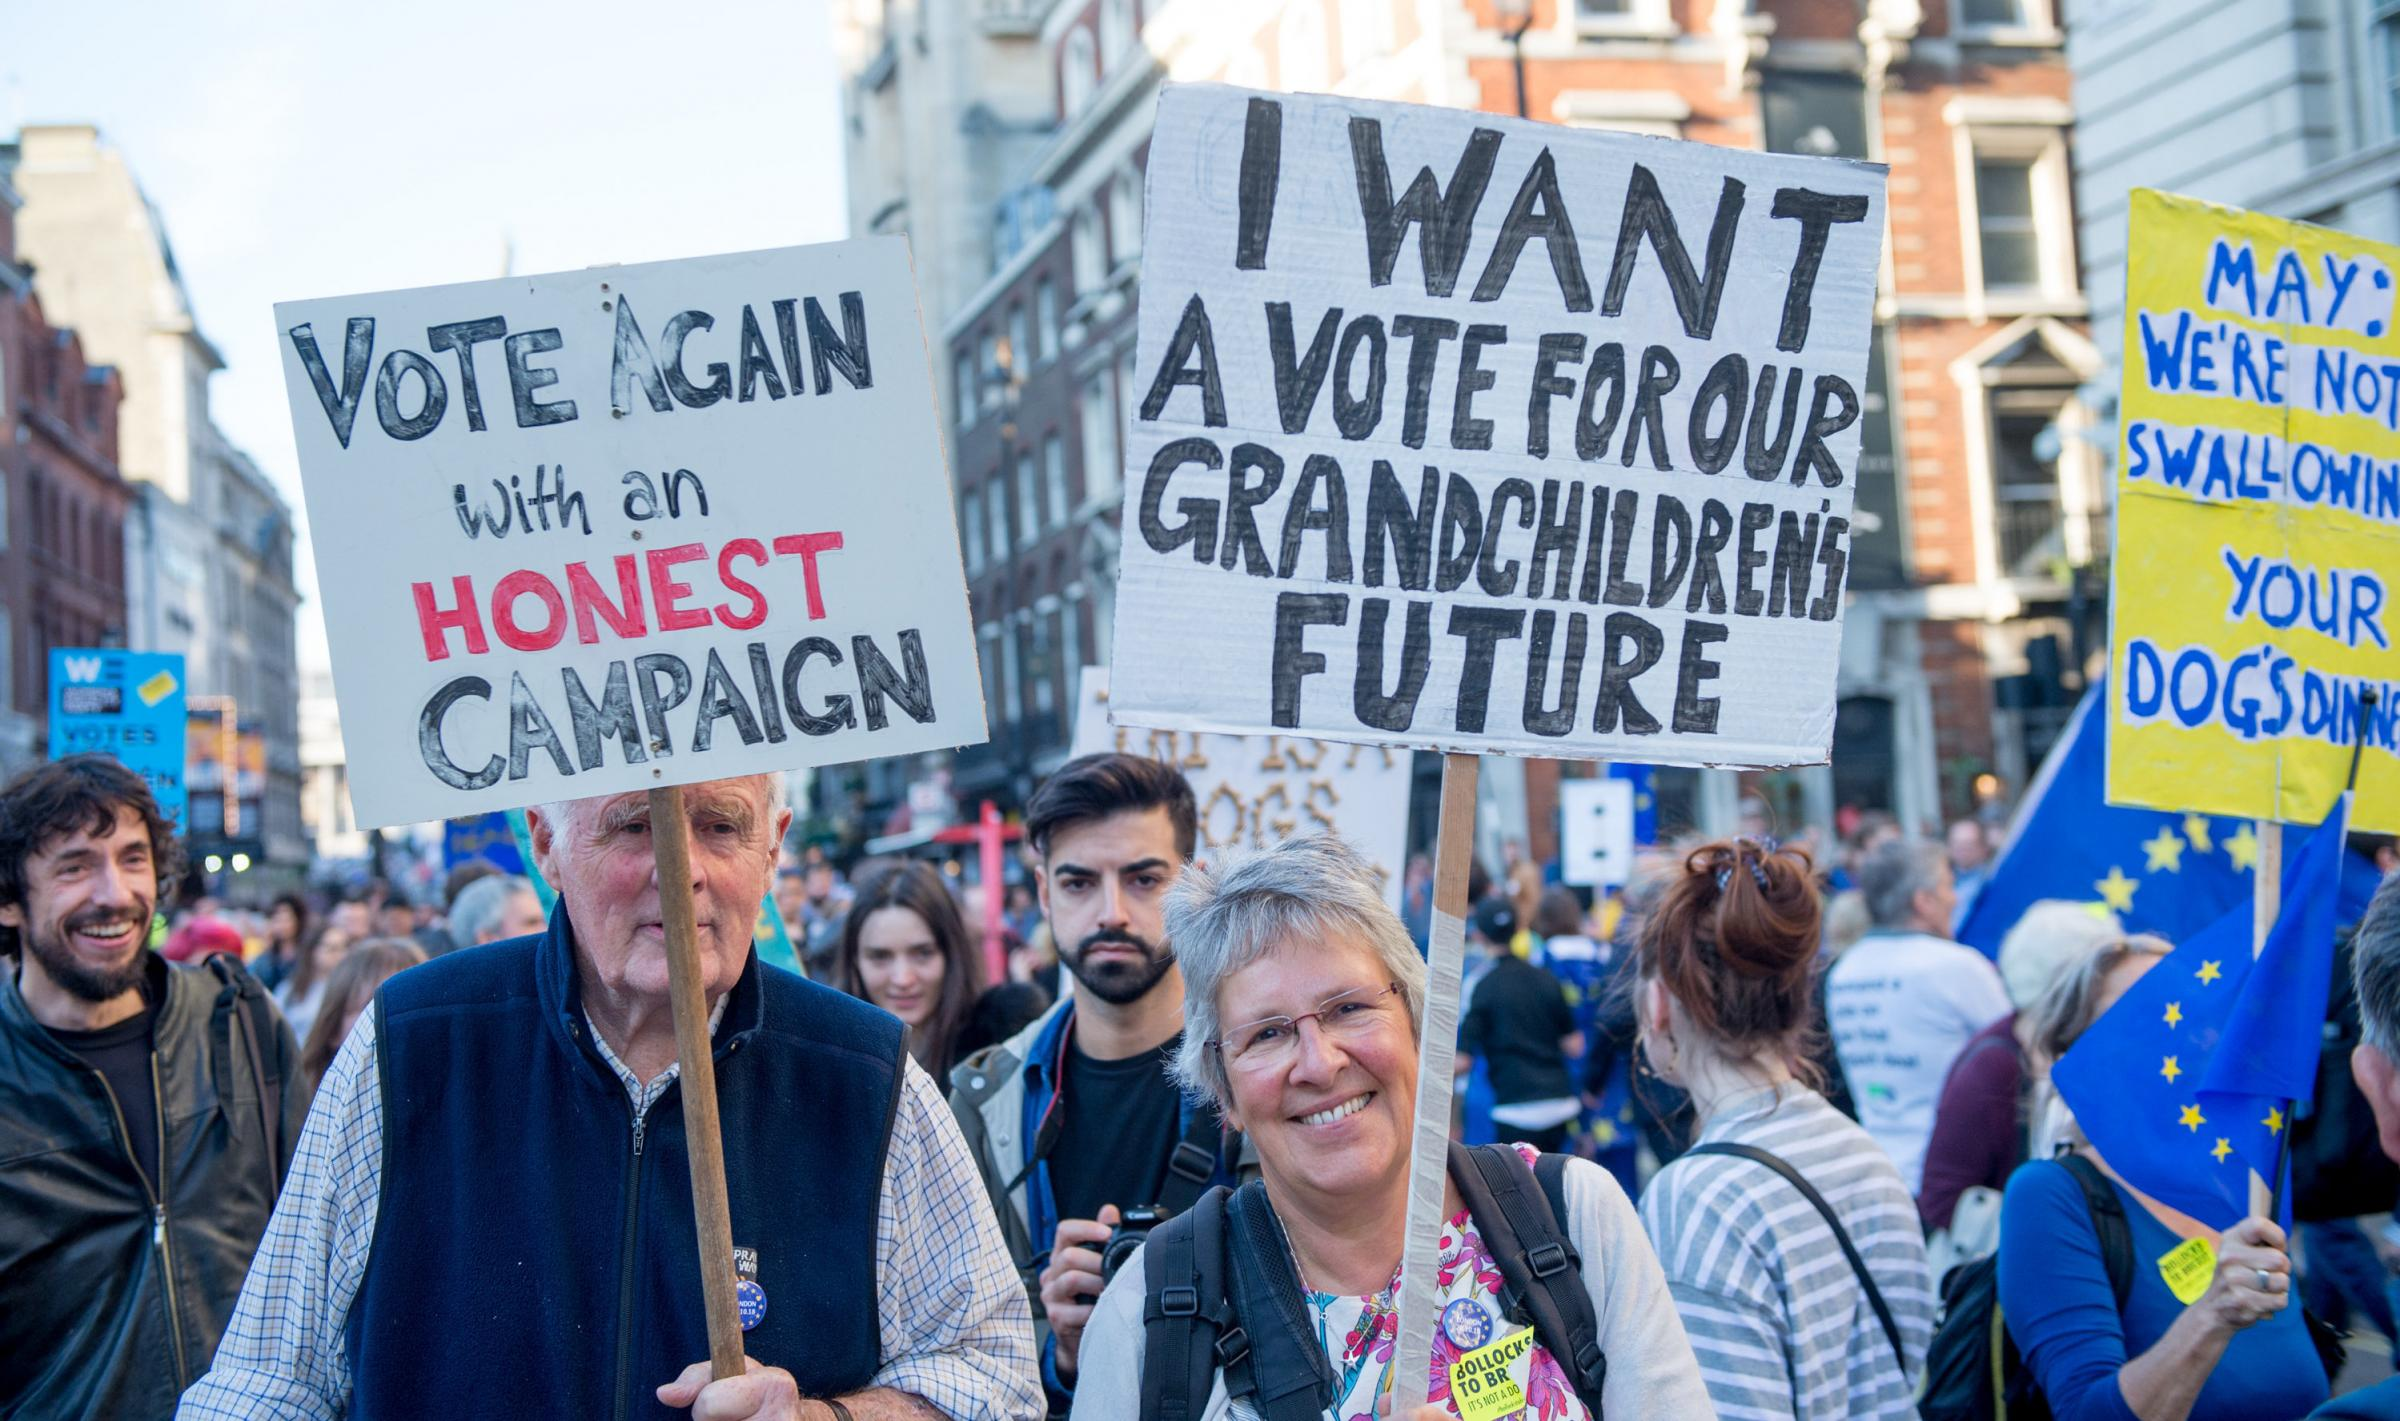 The advocates across the UK of a People's Vote deserve a voice in reasoned debate